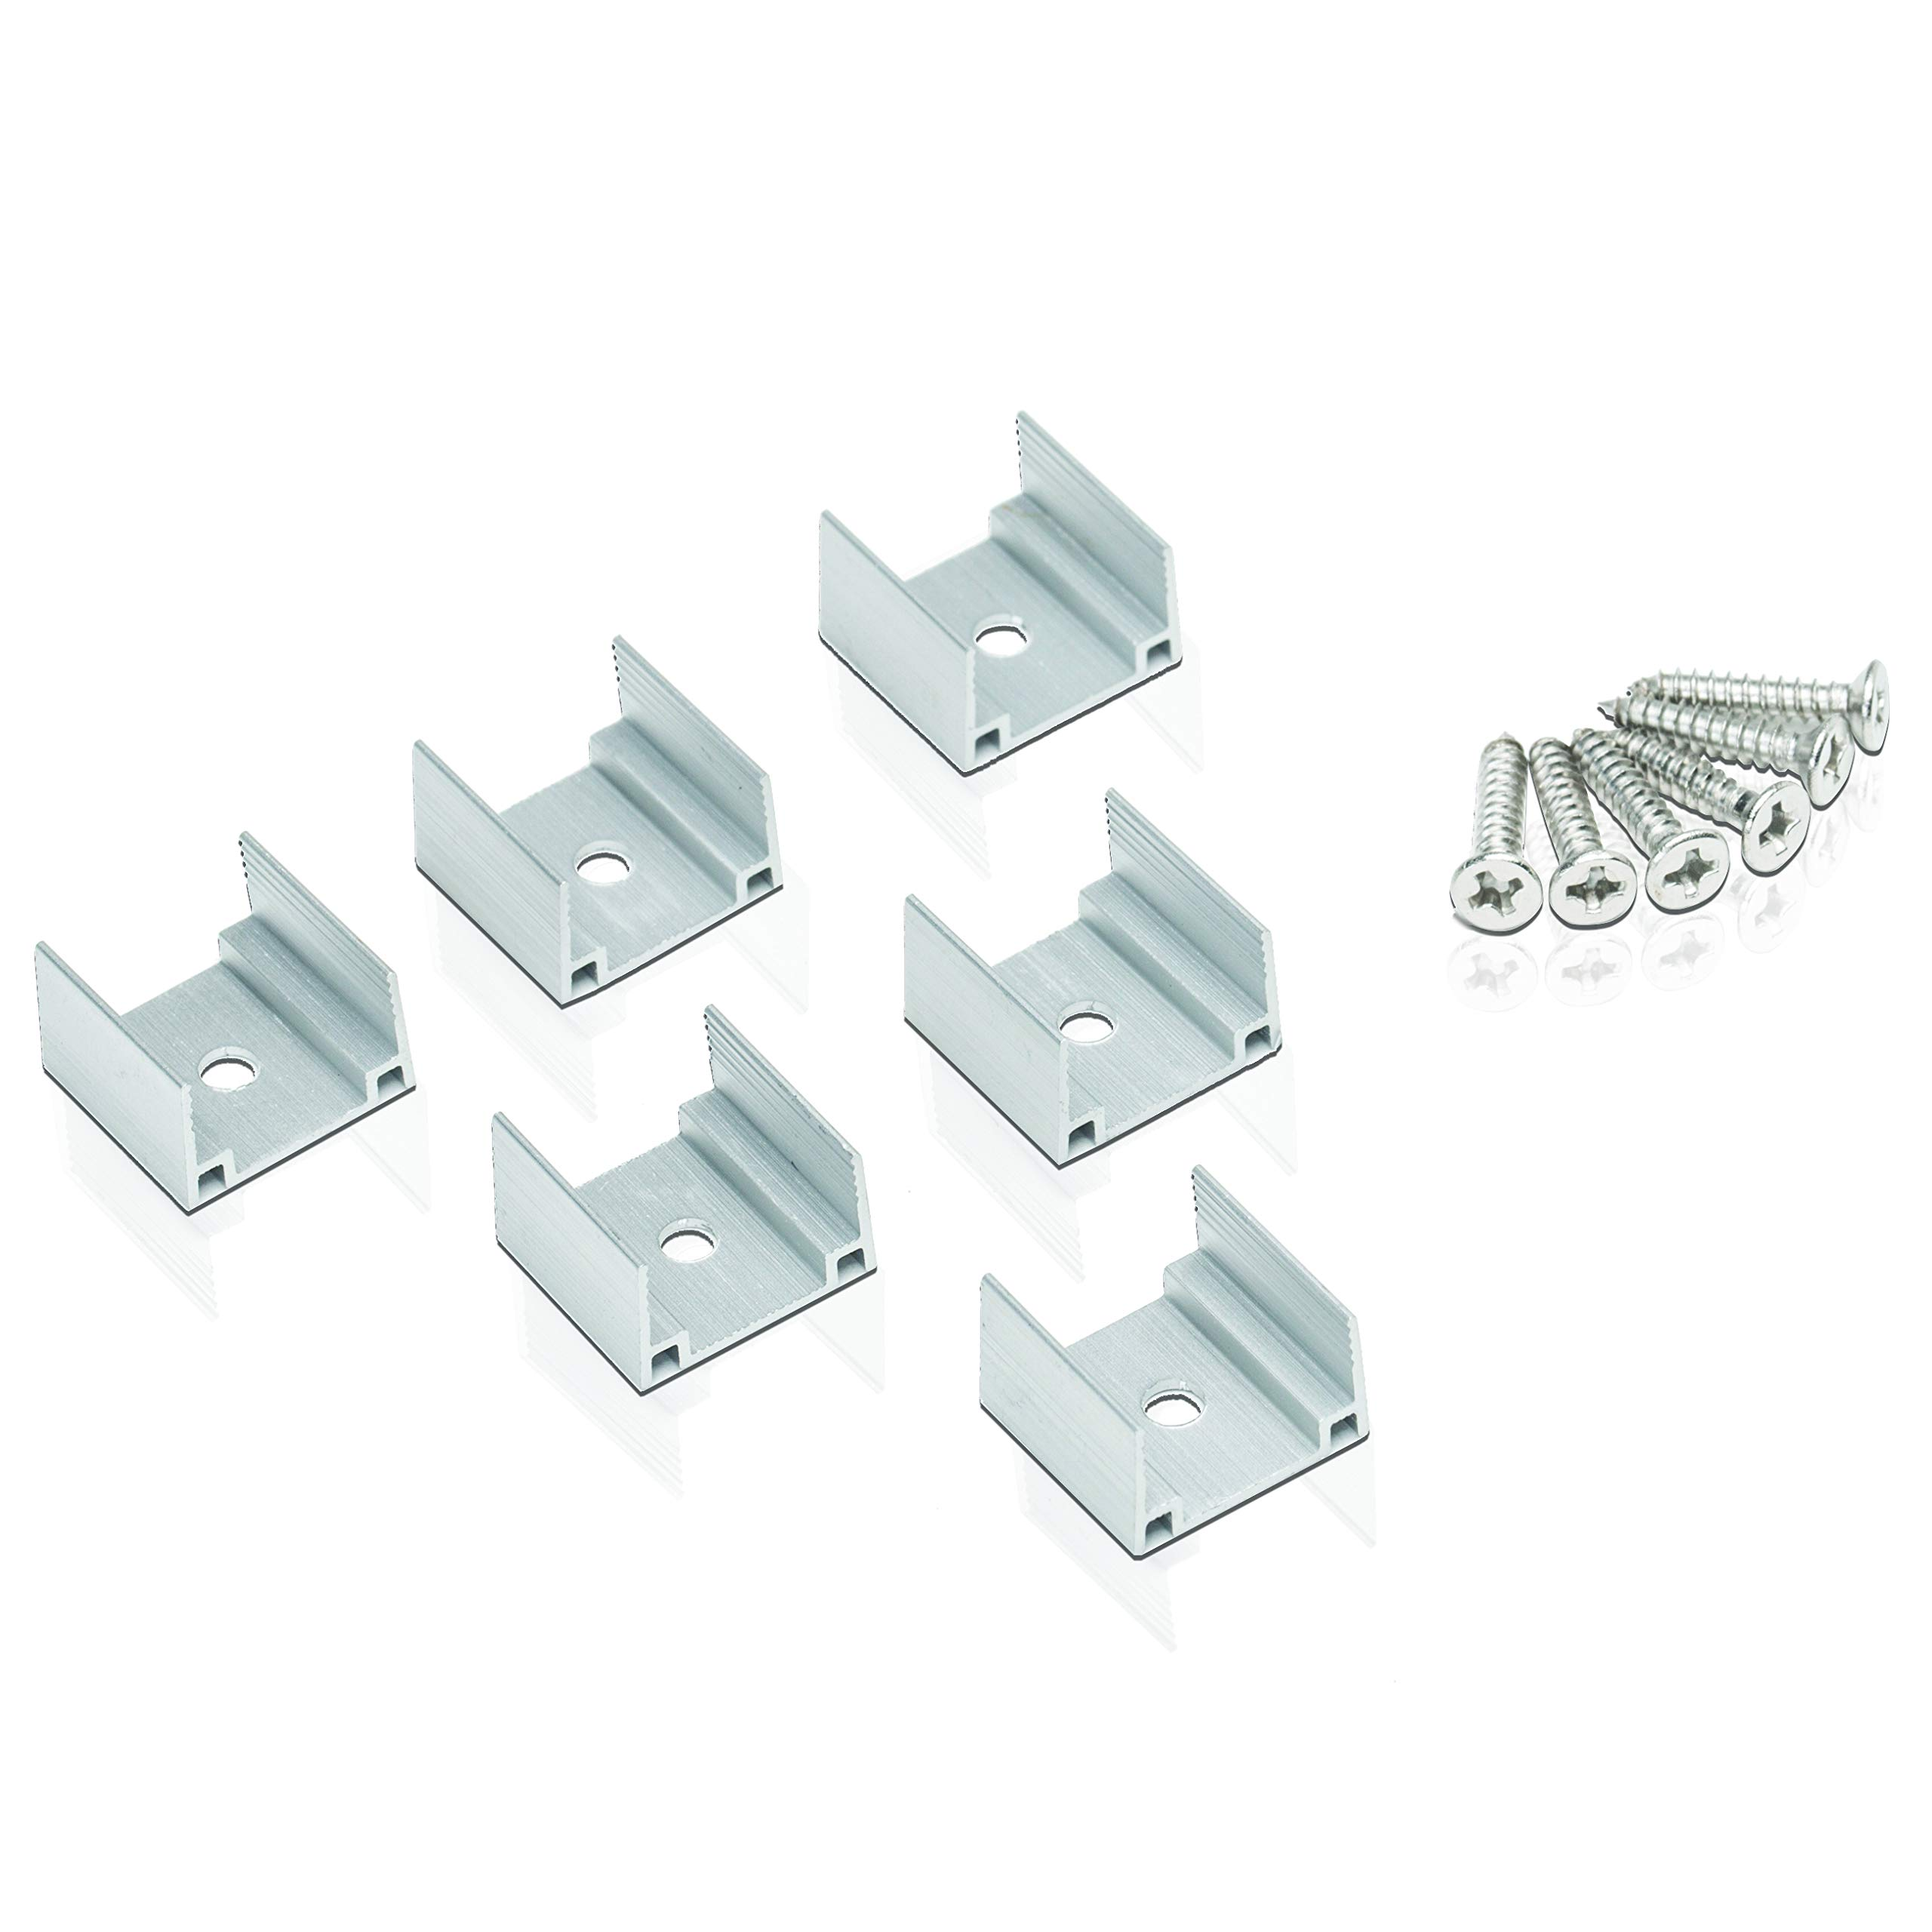 0.5'' Segments of Aluminum Extrusion U-Channel for Use with Lumilum 120V LED Strip LUM-120505 Models - 6 Pack